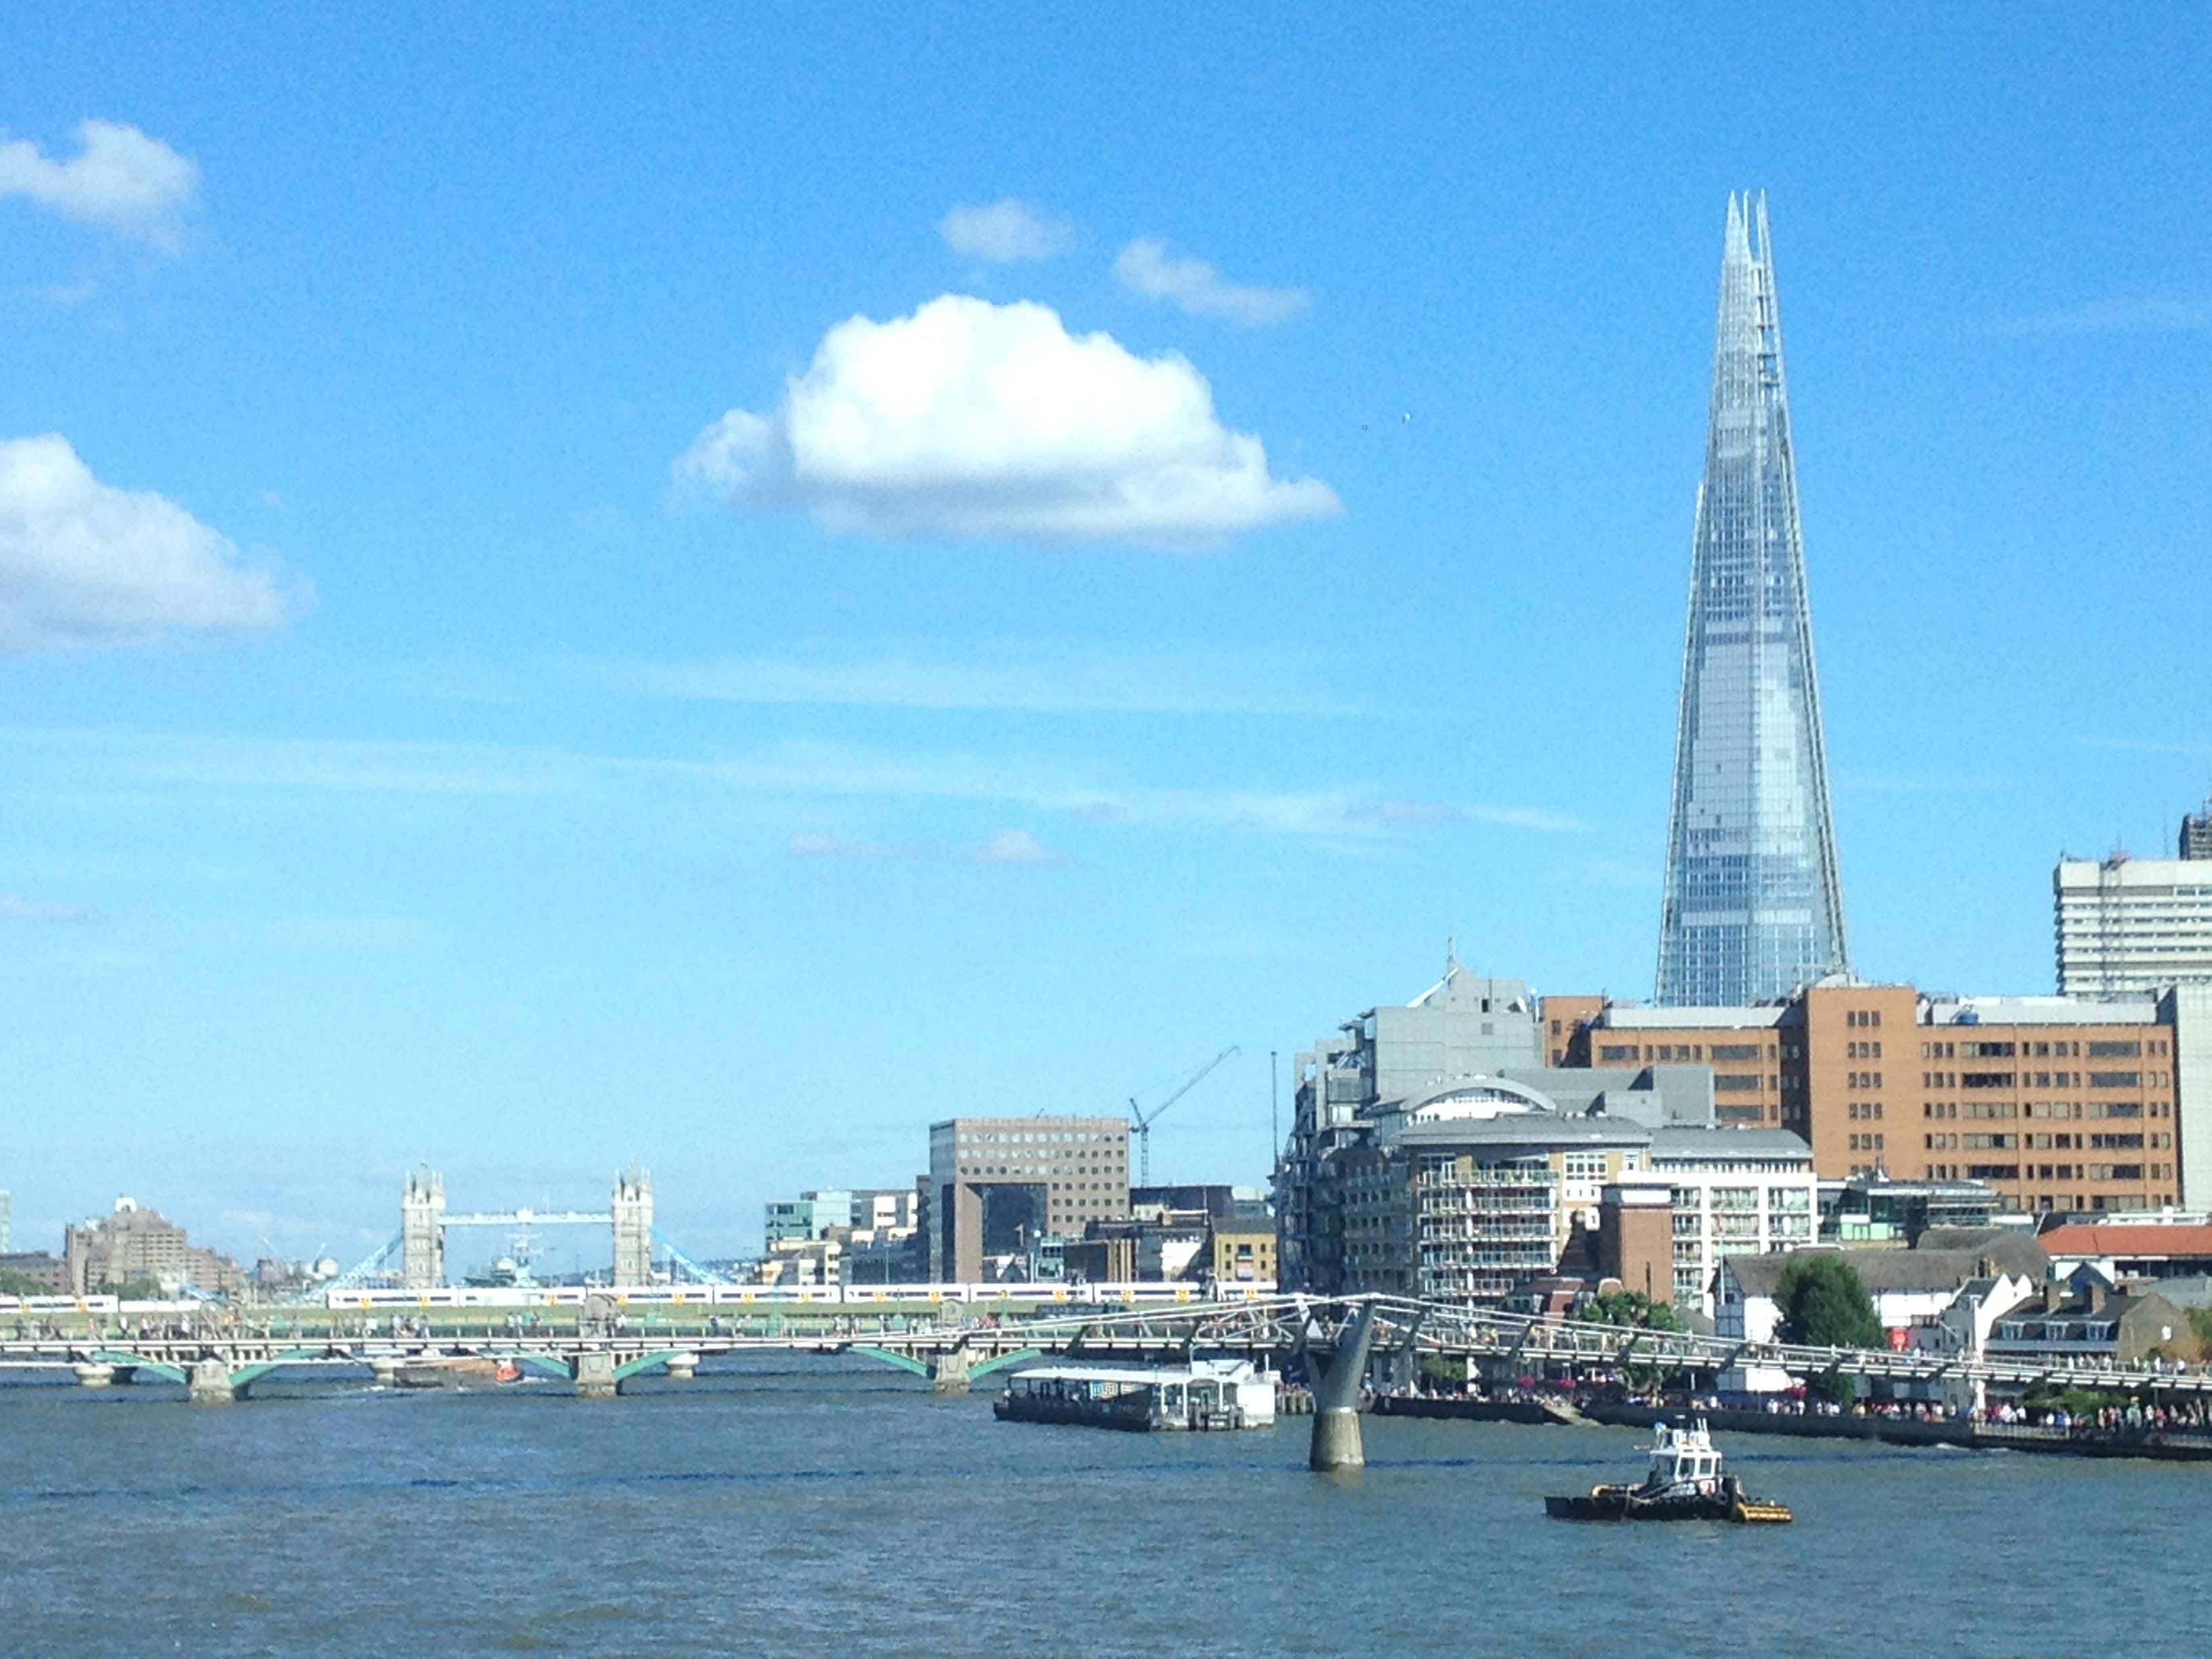 View from Blackfriars station platform down the Thames towards The Shard.